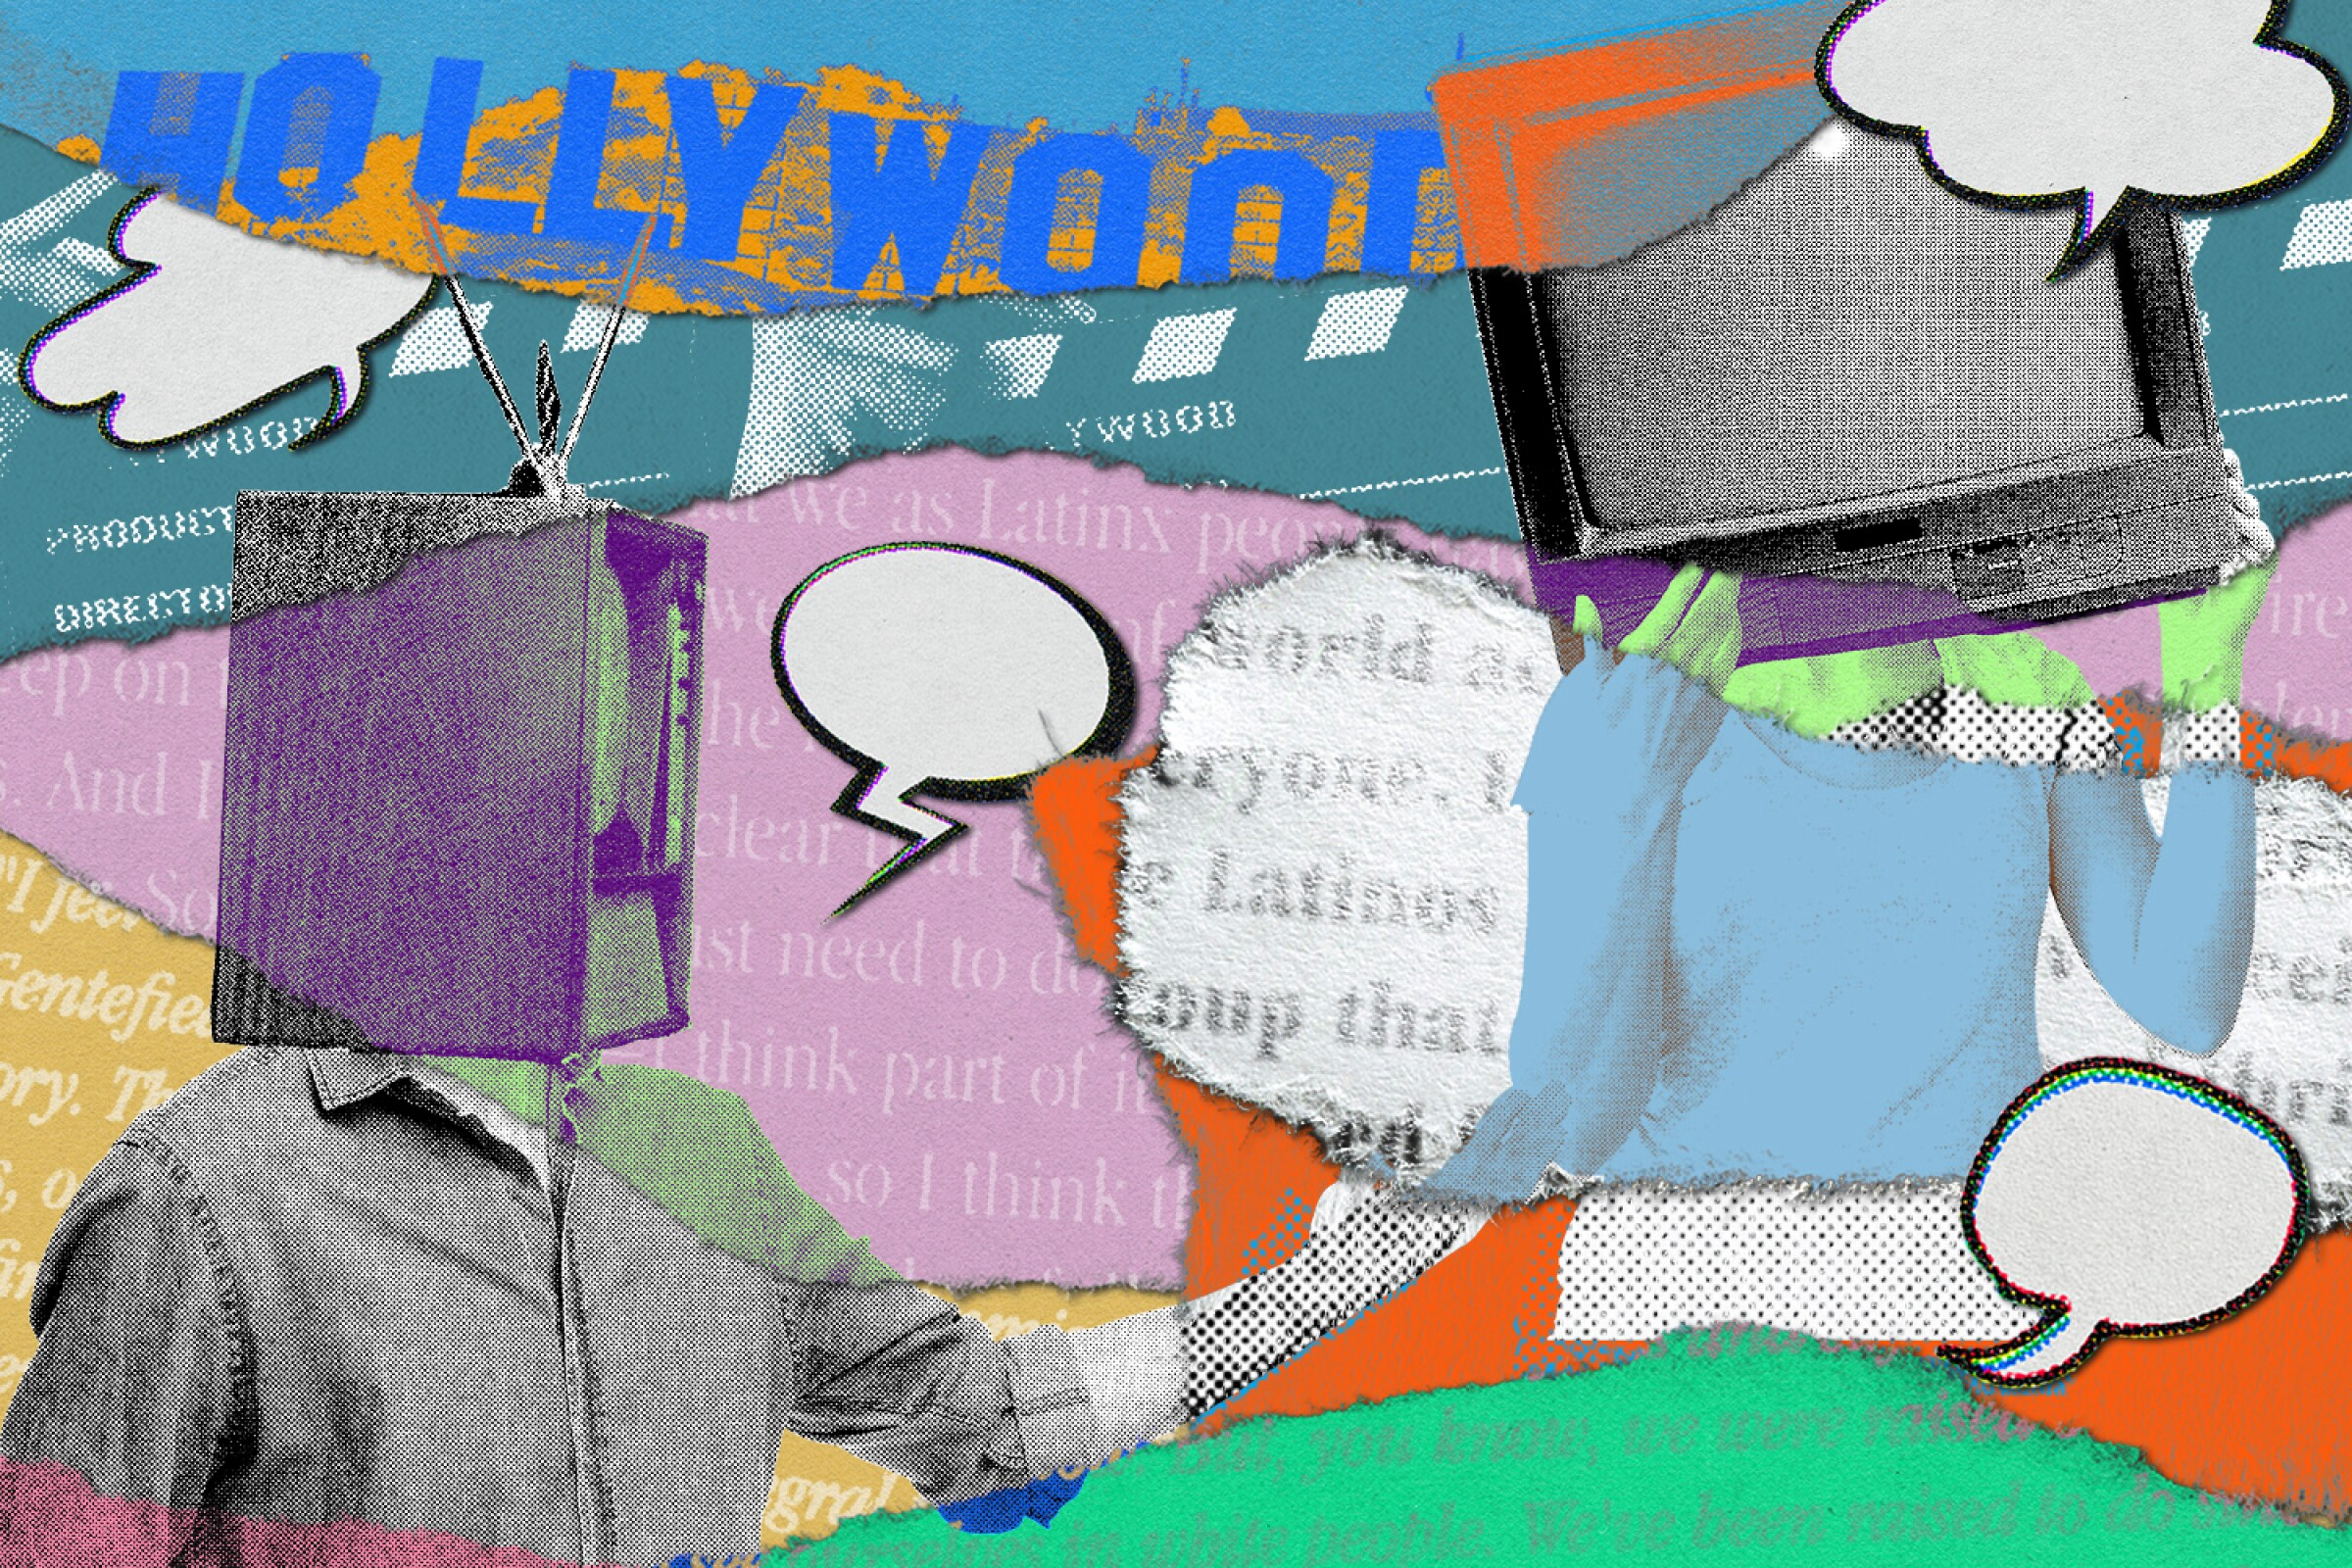 Illustration of different colored paper strips with text on them, the Hollywood sign image and two people with TVs for heads.